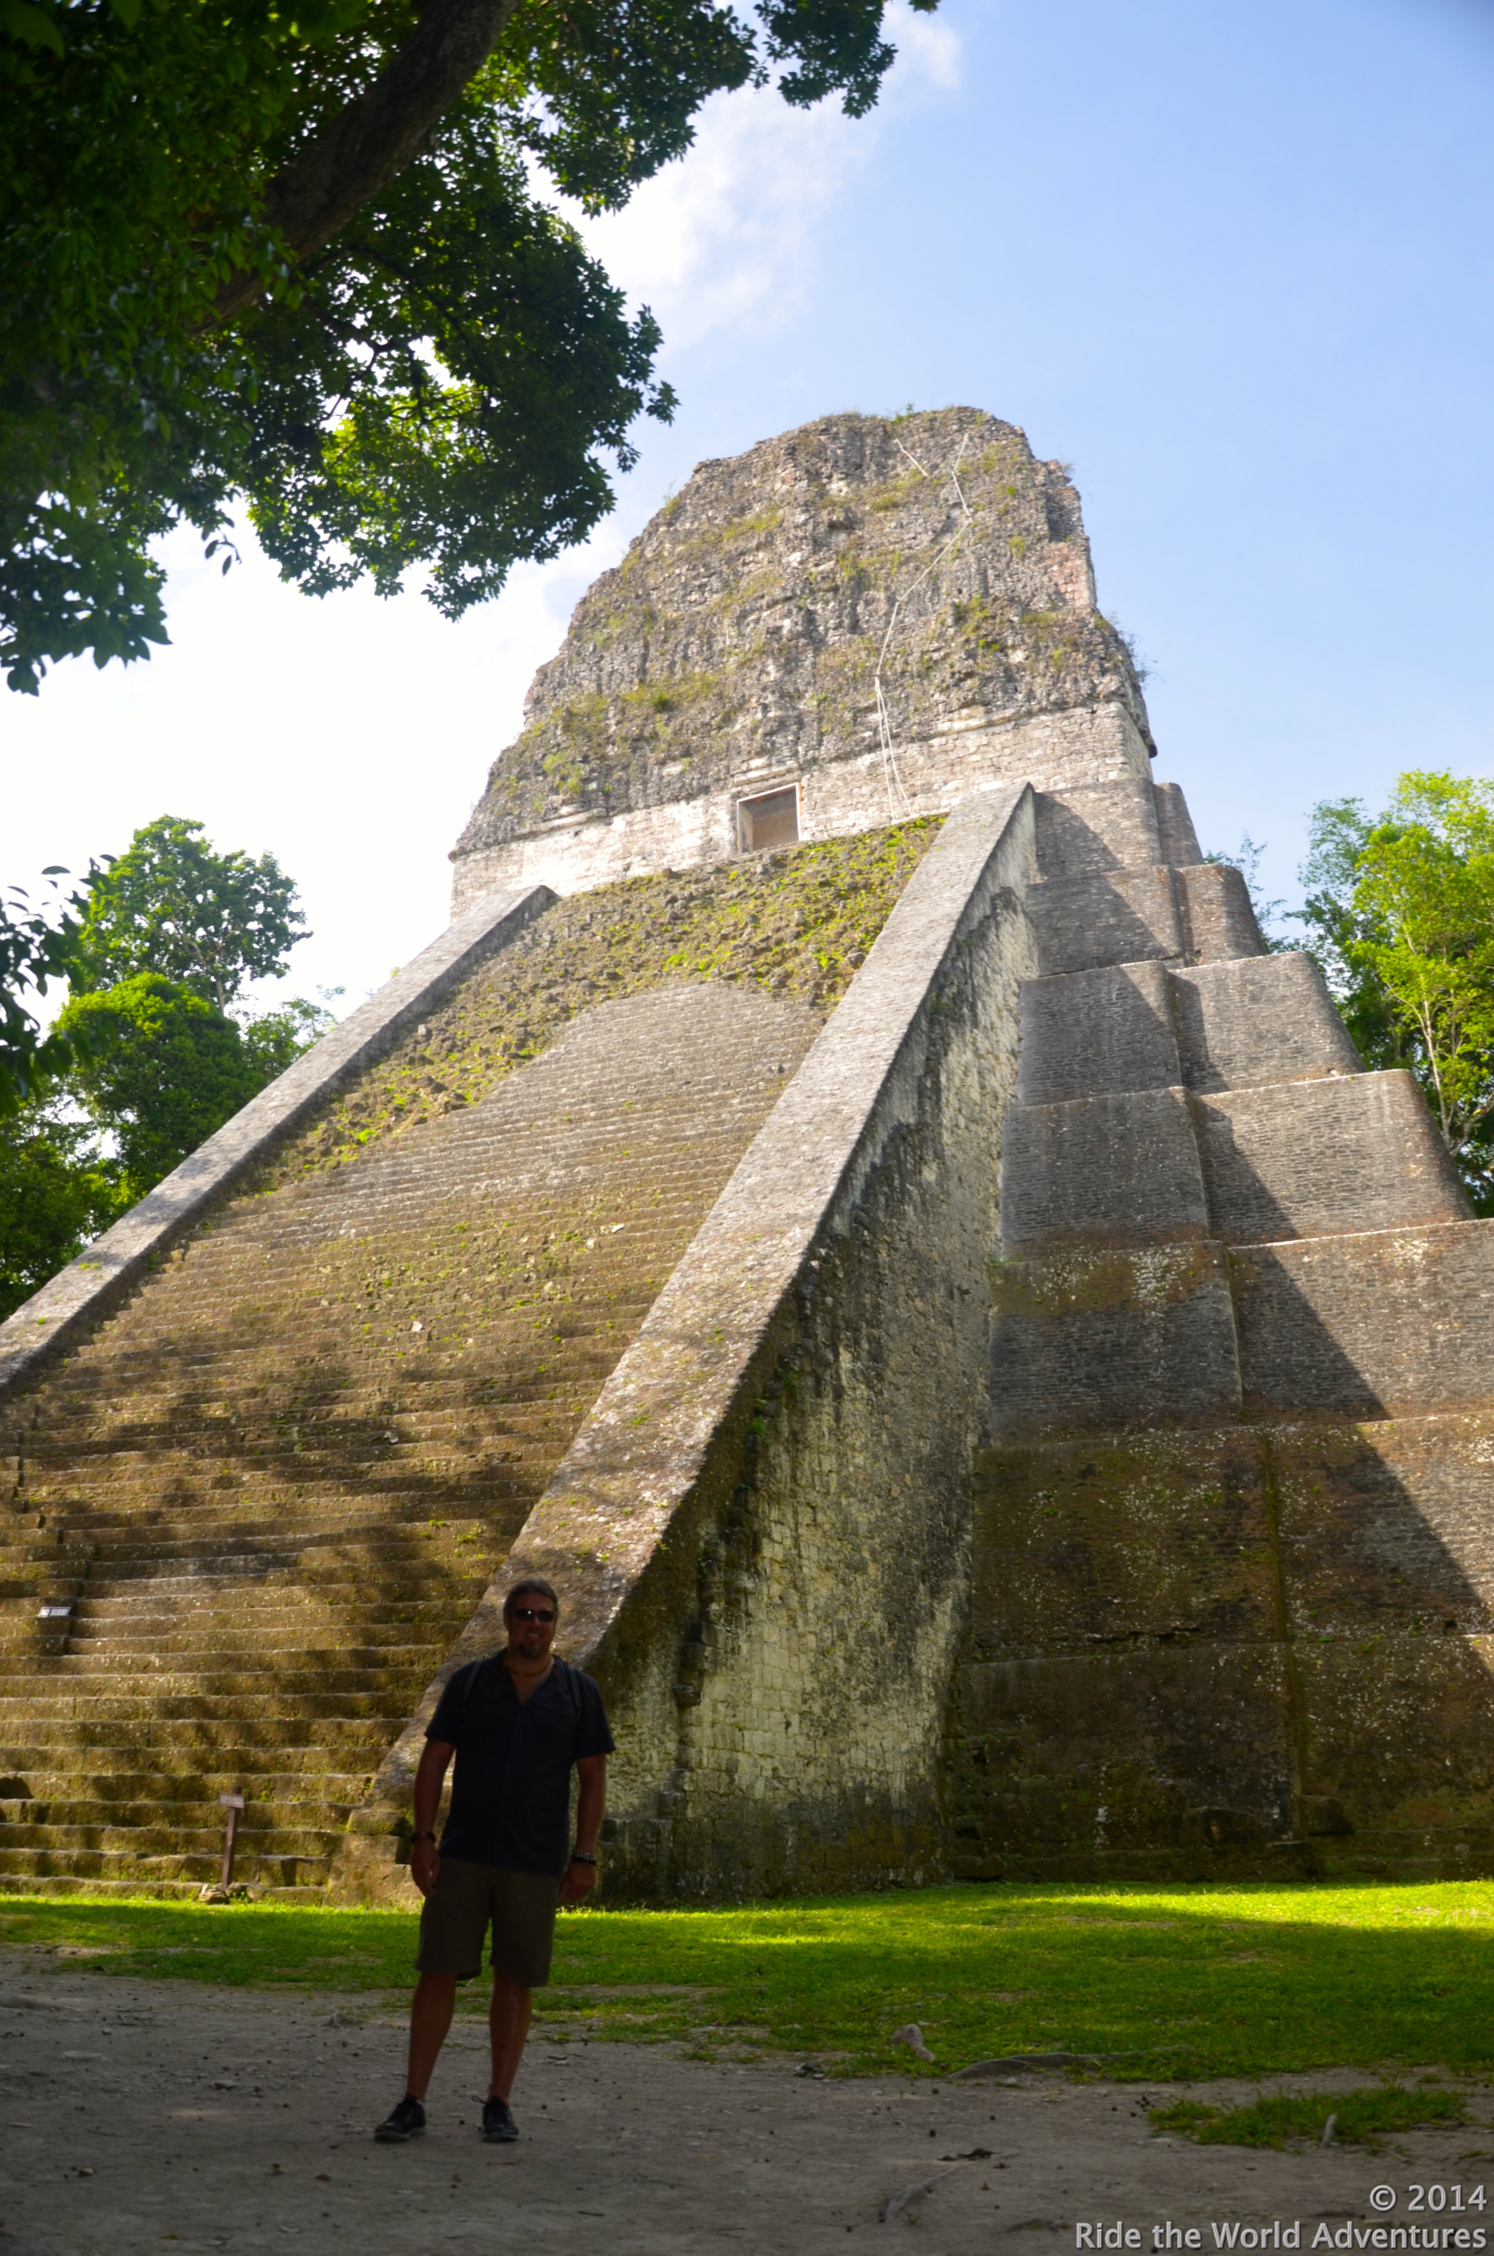 Here you can easily see the seven levels of the Temple (5), representing the 7 days of the week.  This temple was the first constructed at Tikal around 600 A.D